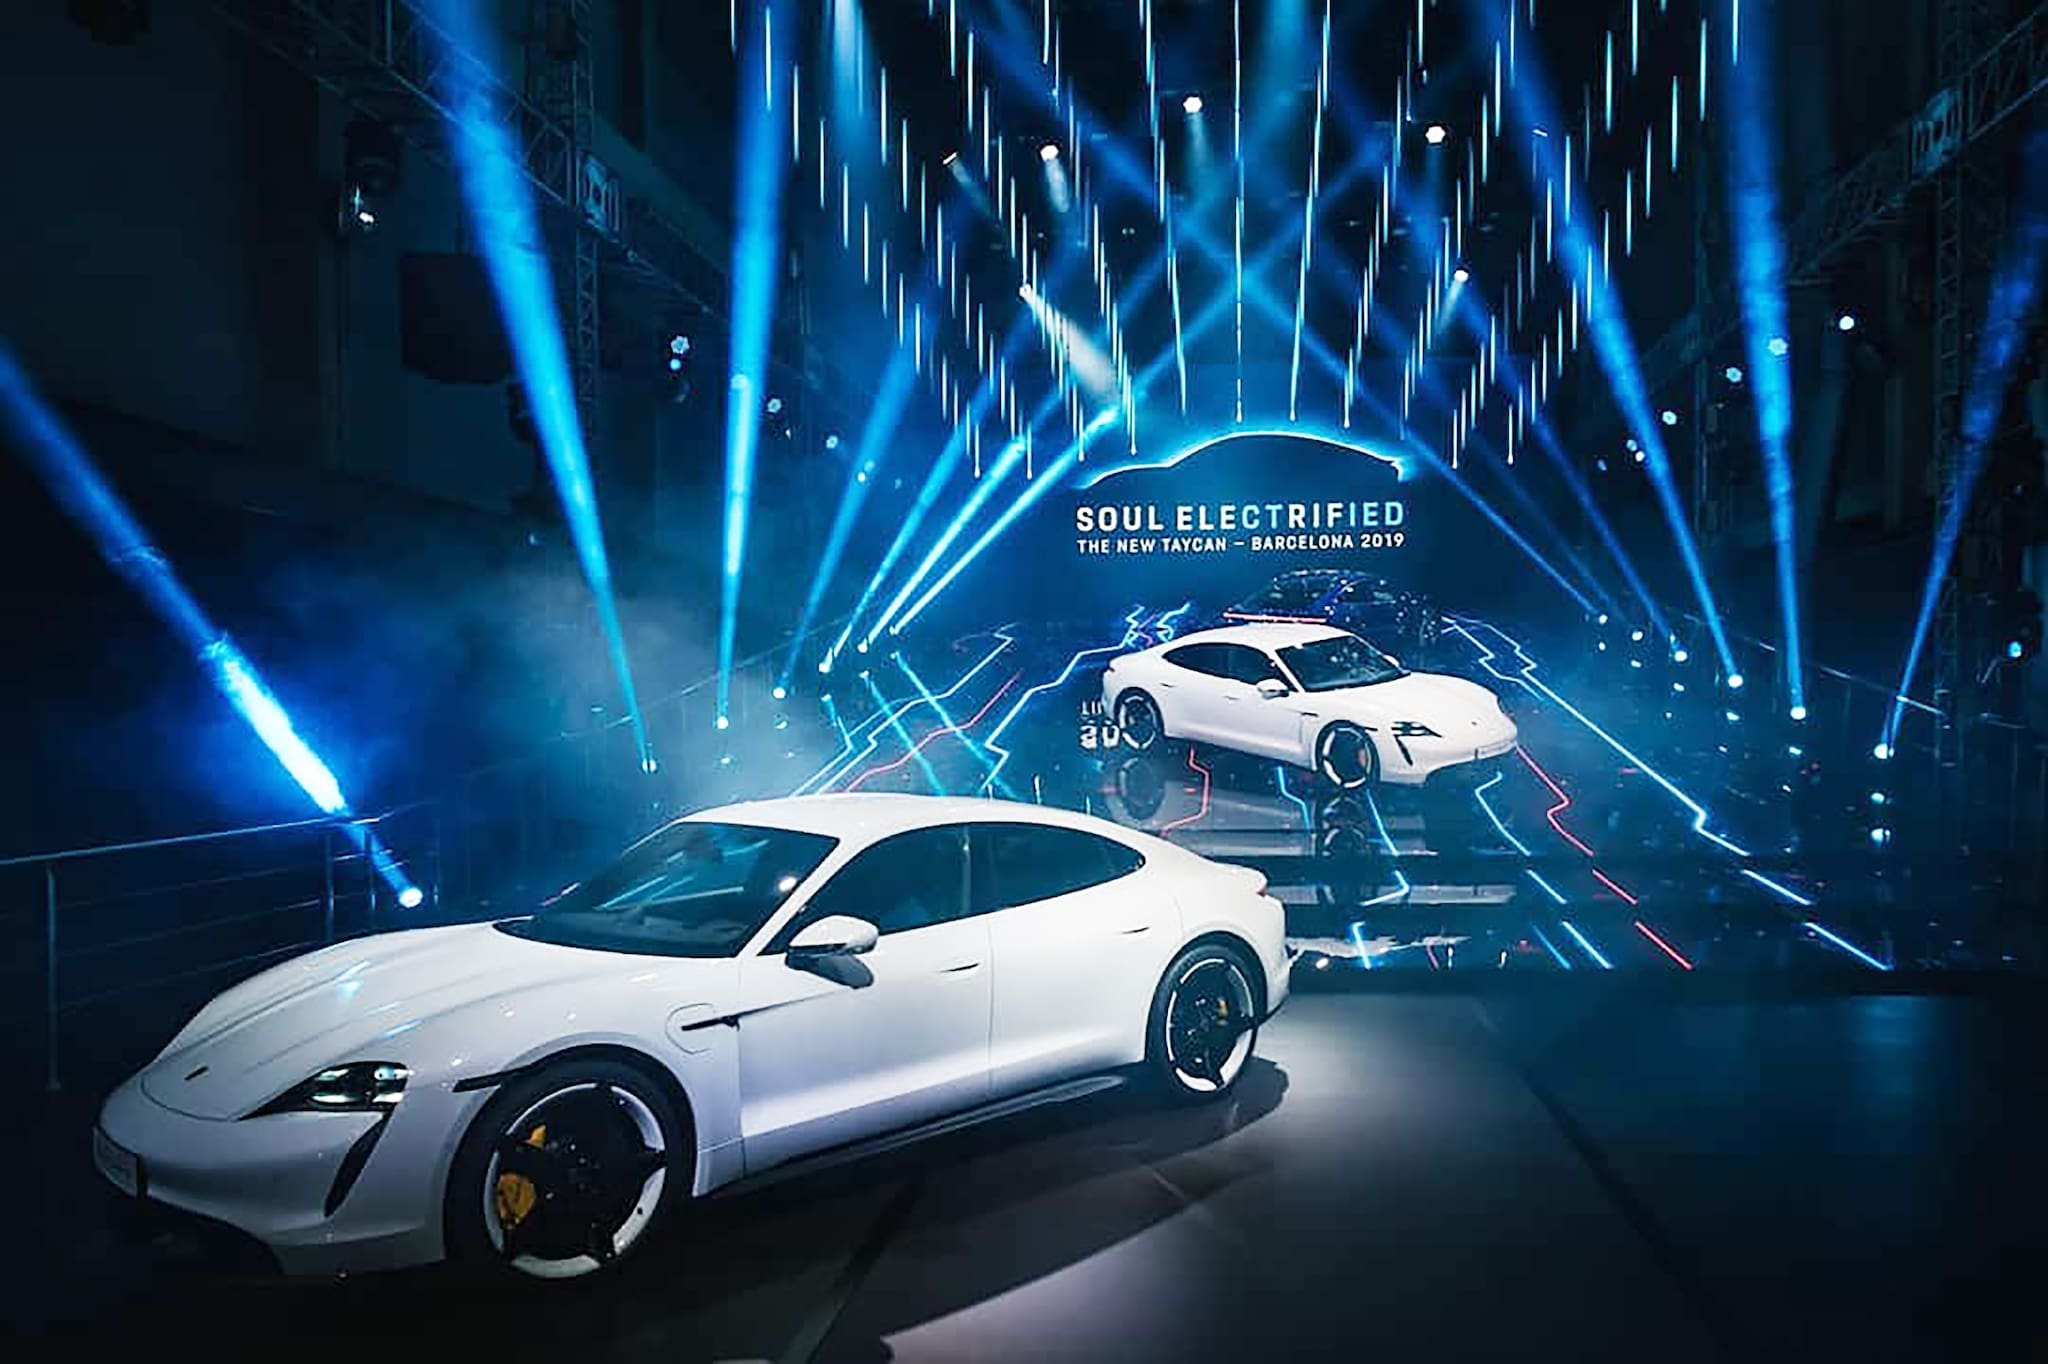 Porsche's premier electric model to arrive in PH in early 2020